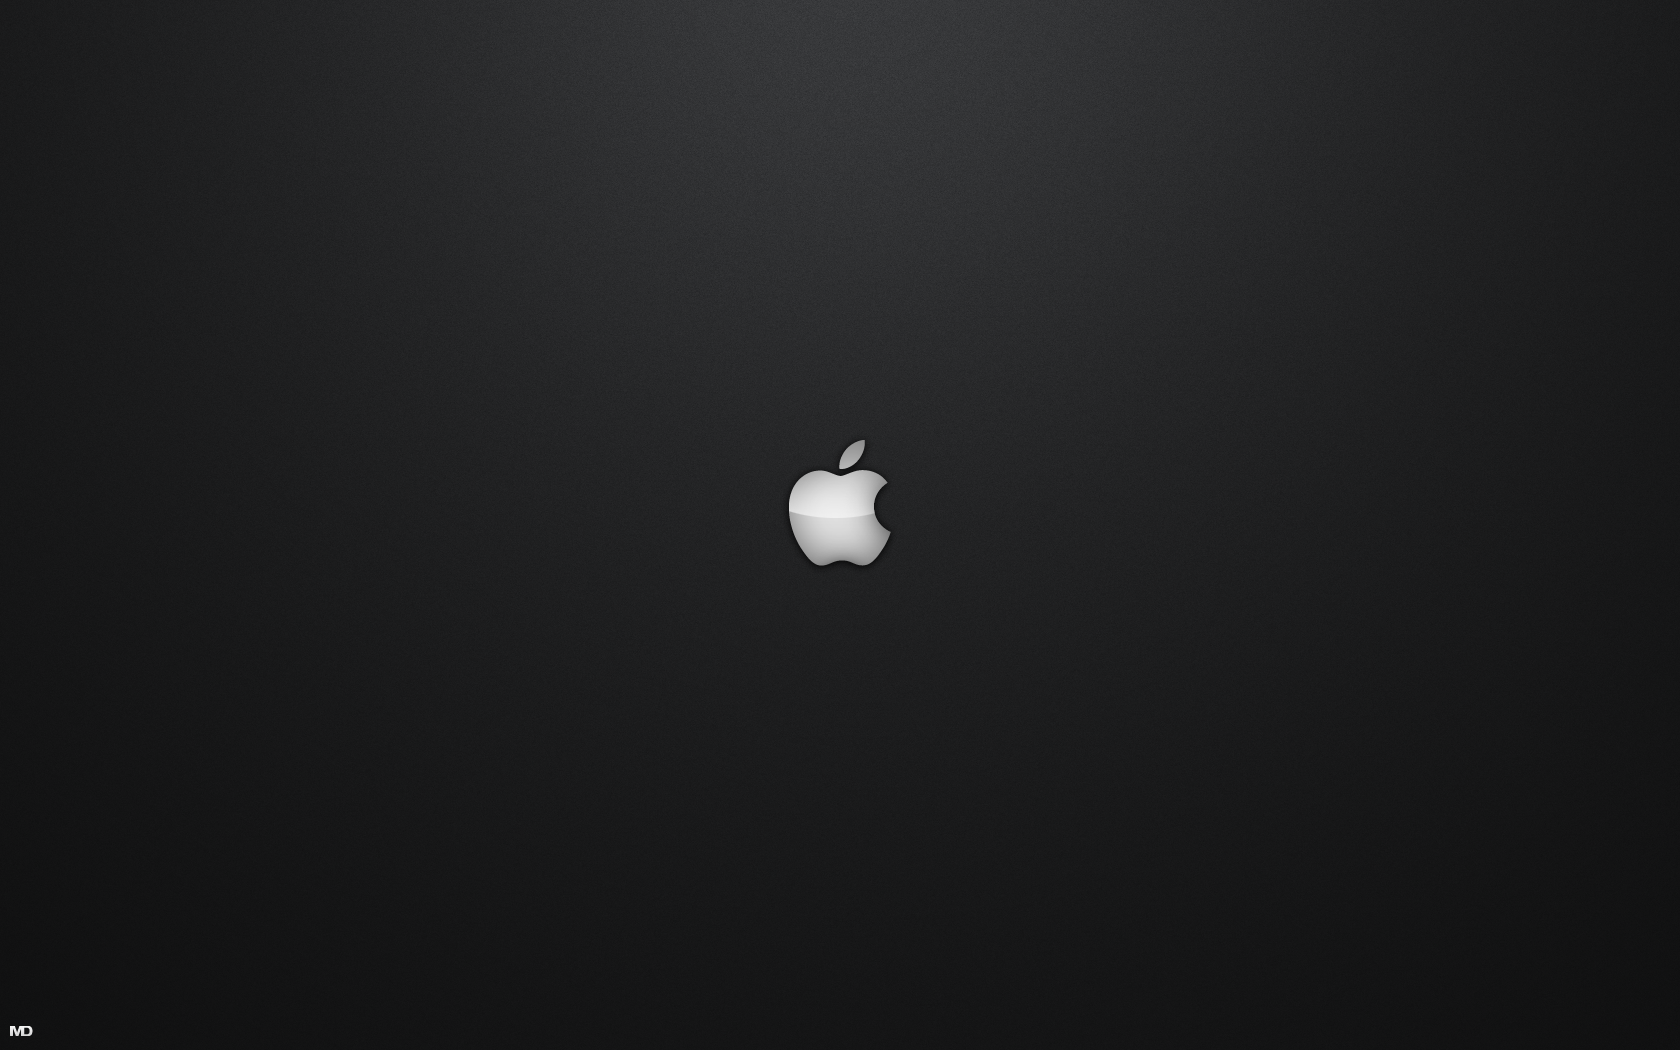 Cool Apple Backgrounds 43 Wallpapers Hd Wallpapers In